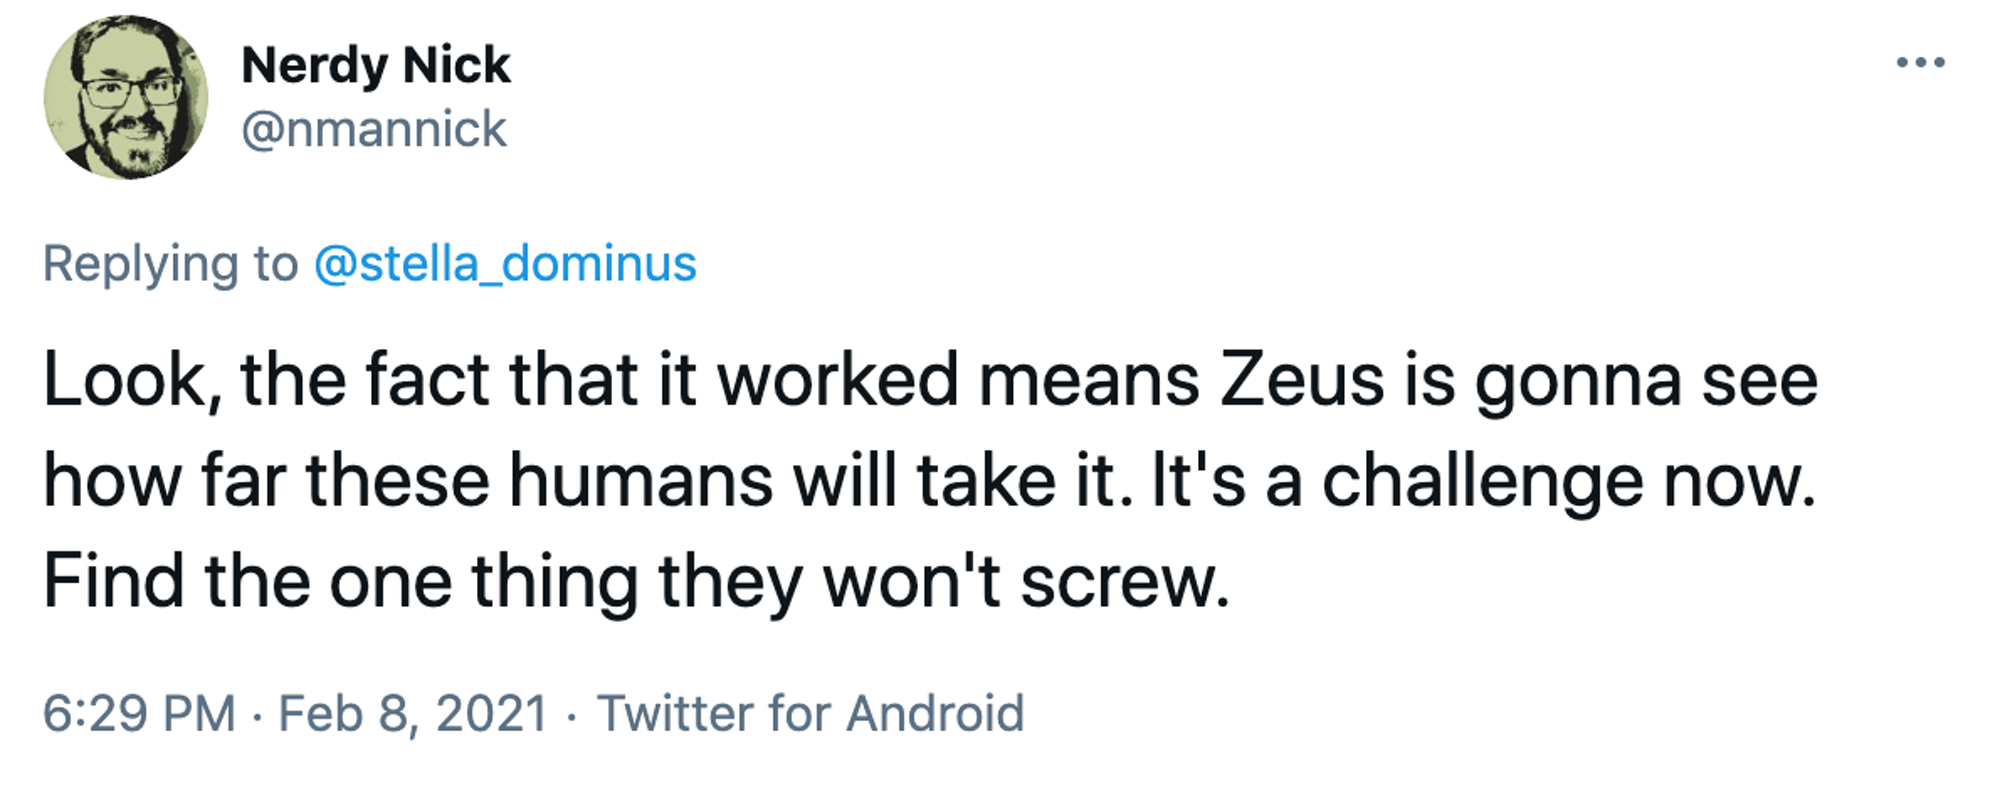 Look, the fact that it worked means Zeus is gonna see how far these humans will take it. It's a challenge now. Find the one thing they won't screw.